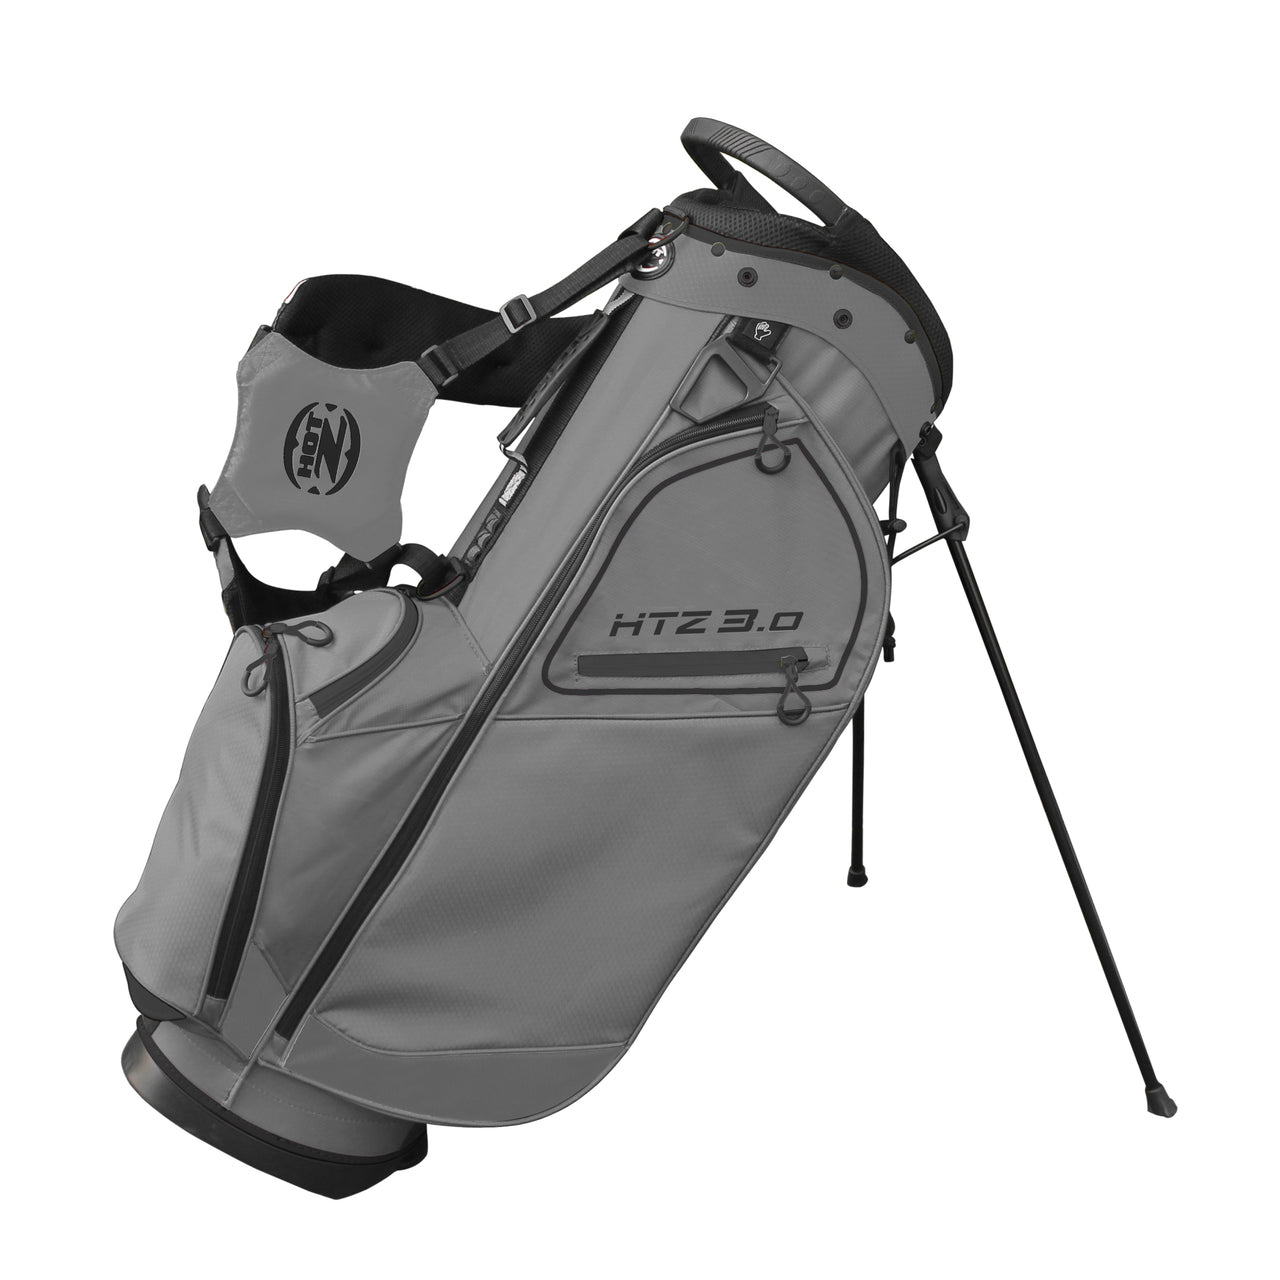 Hot-Z 3.0 Stand Bag